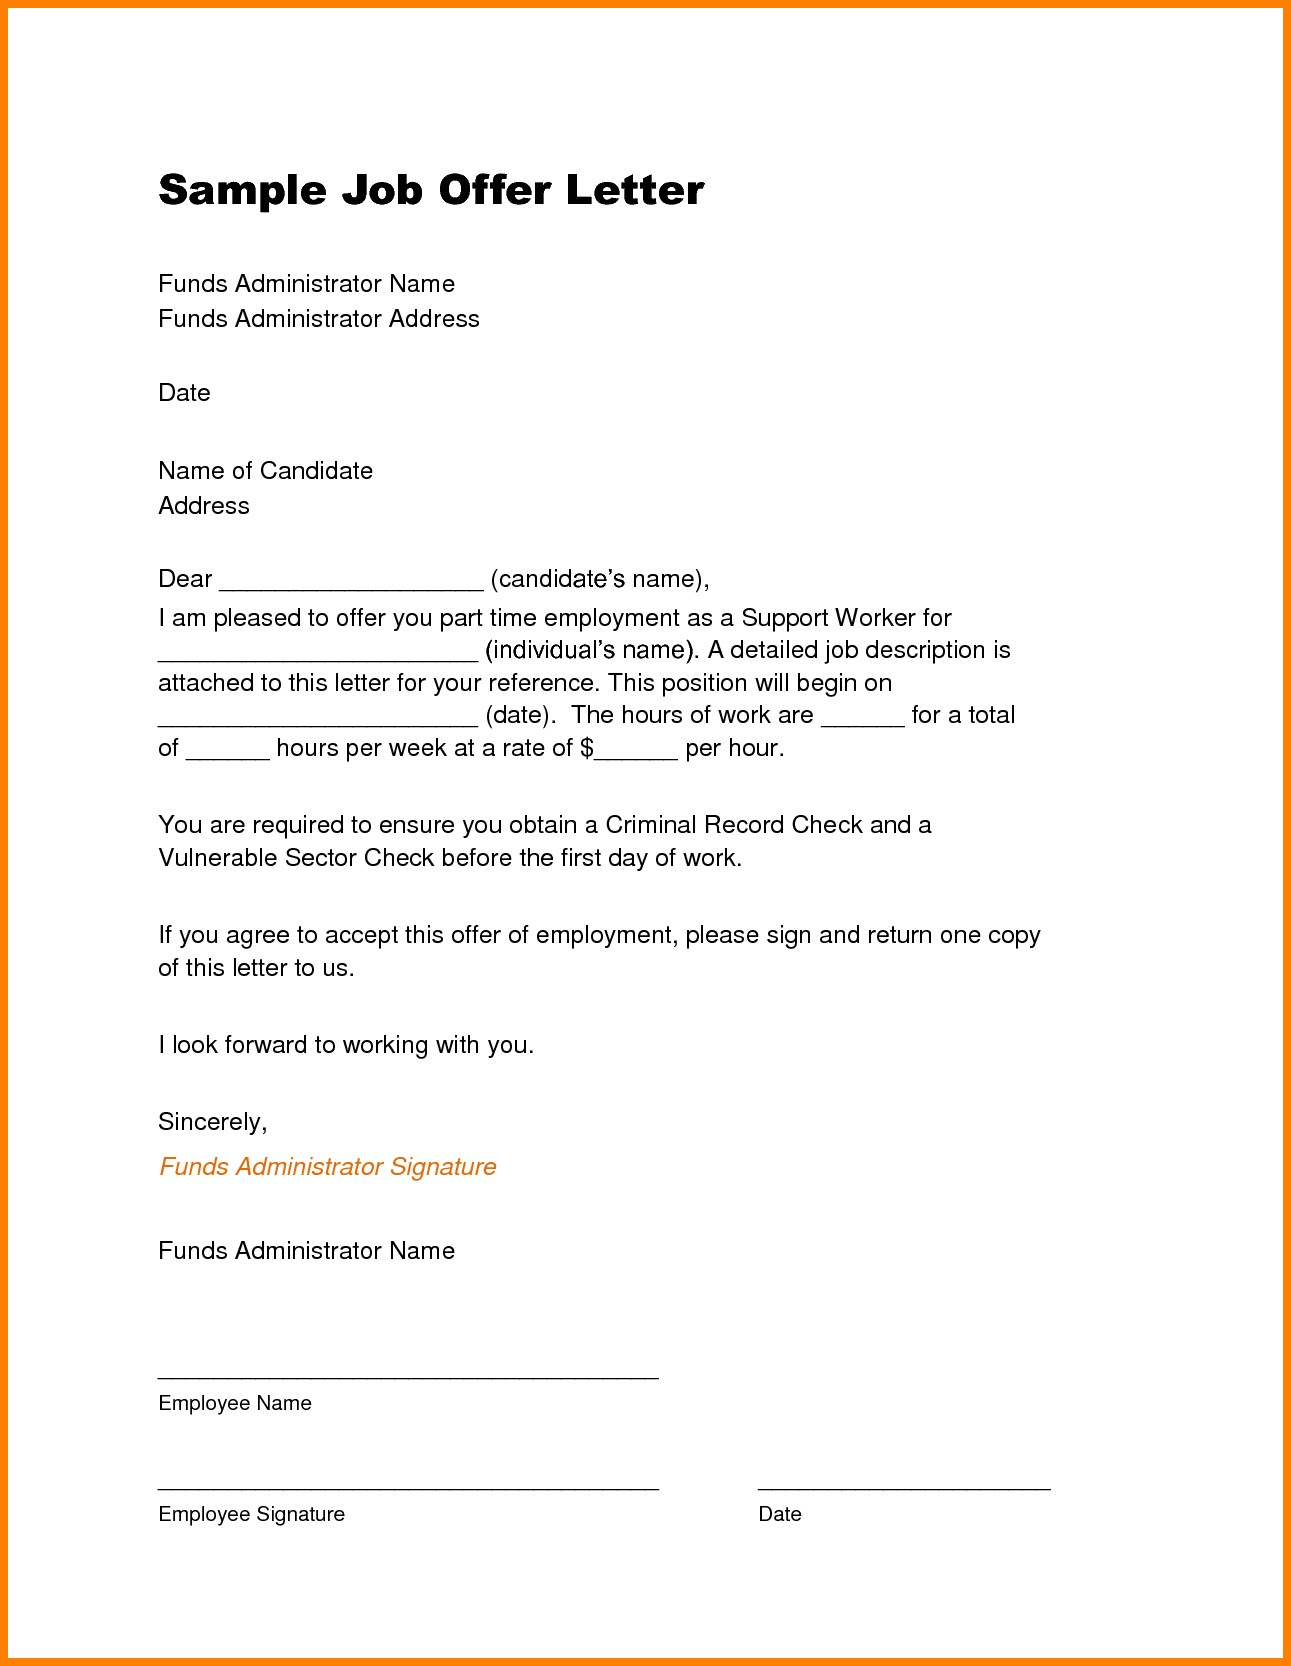 job offer letter samples